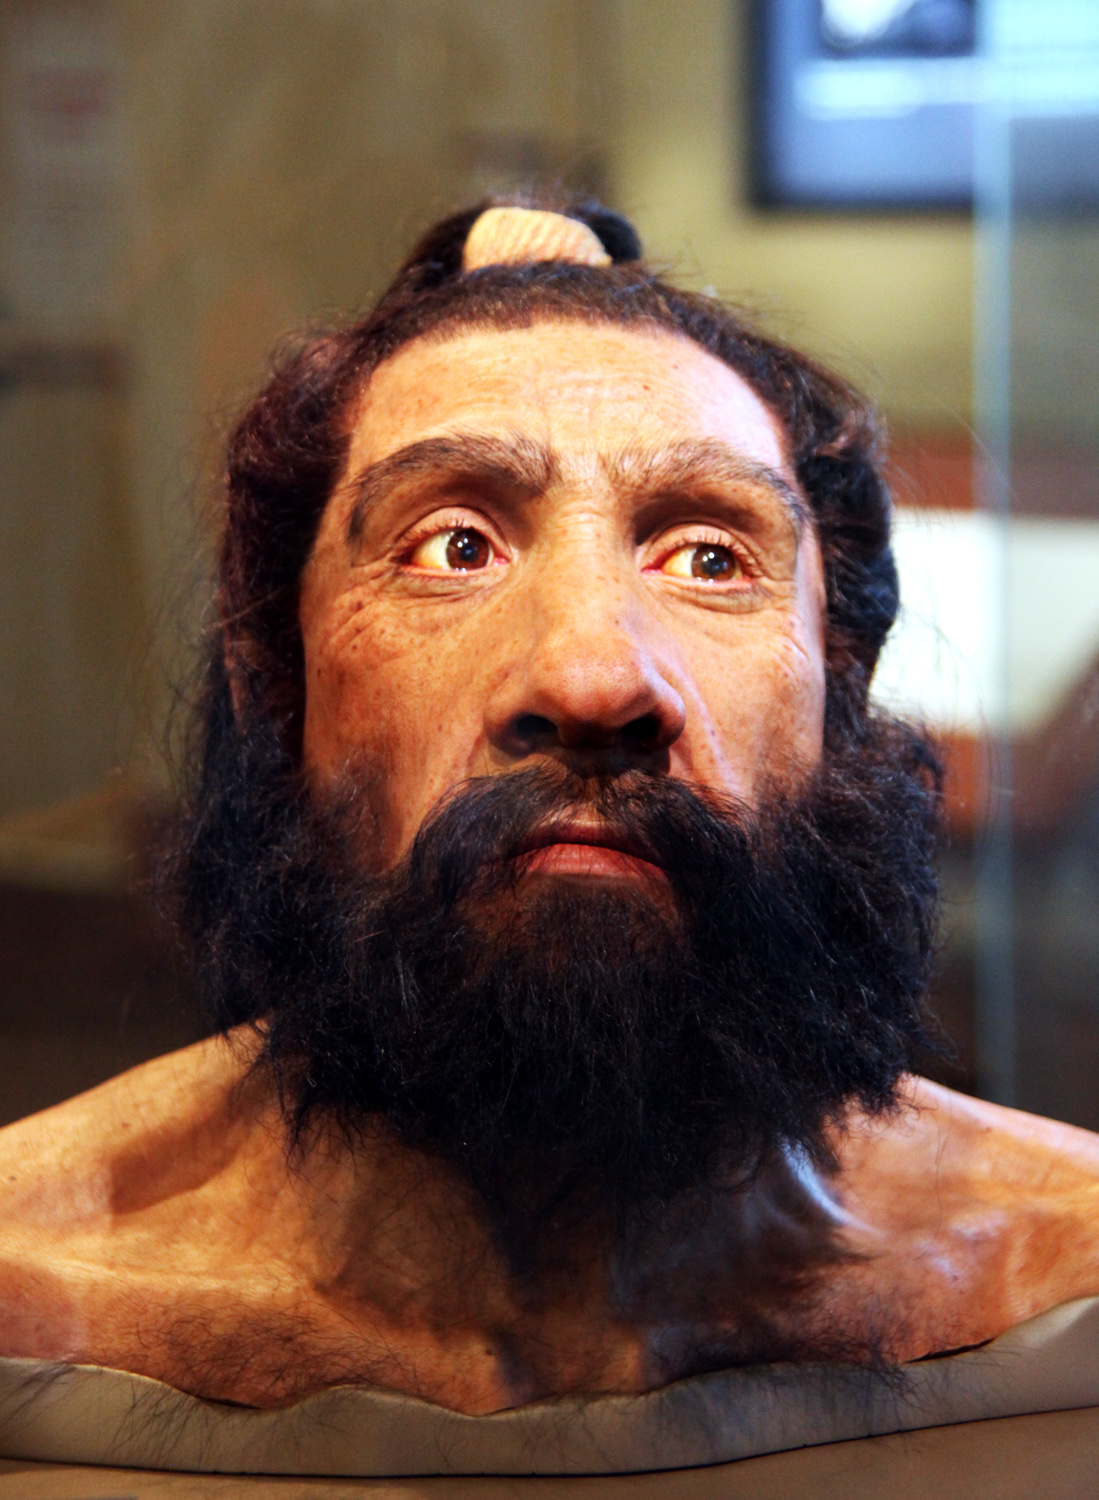 Reconstruction of Neanderthal male 70,000 years ago